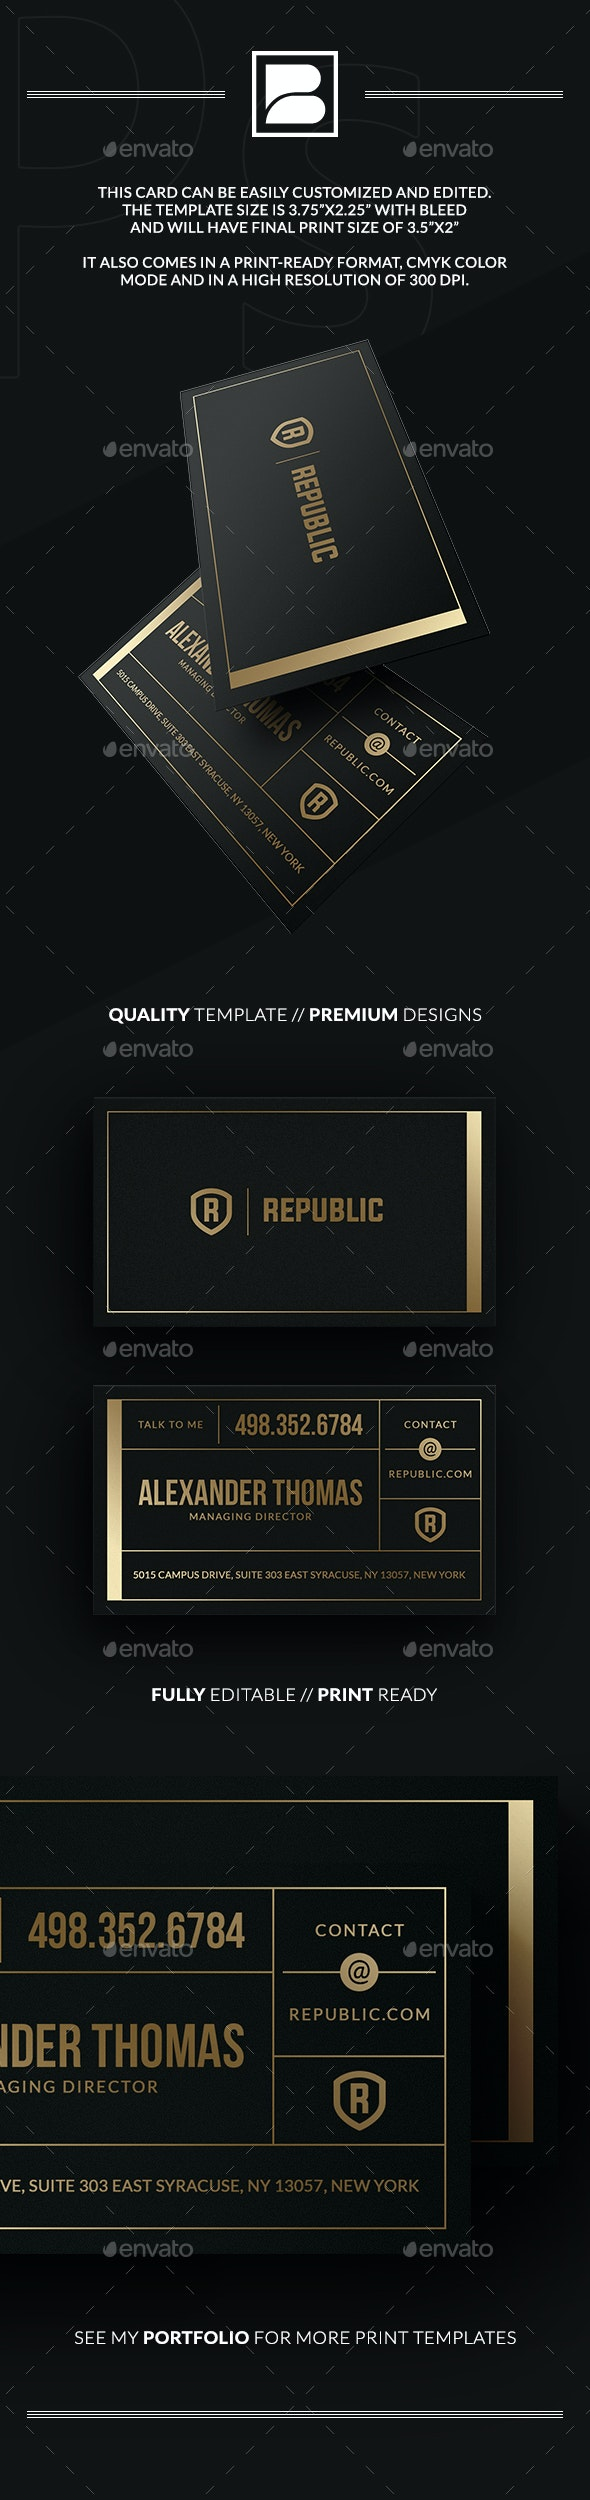 Gold And Black Business Card - Retro/Vintage Business Cards